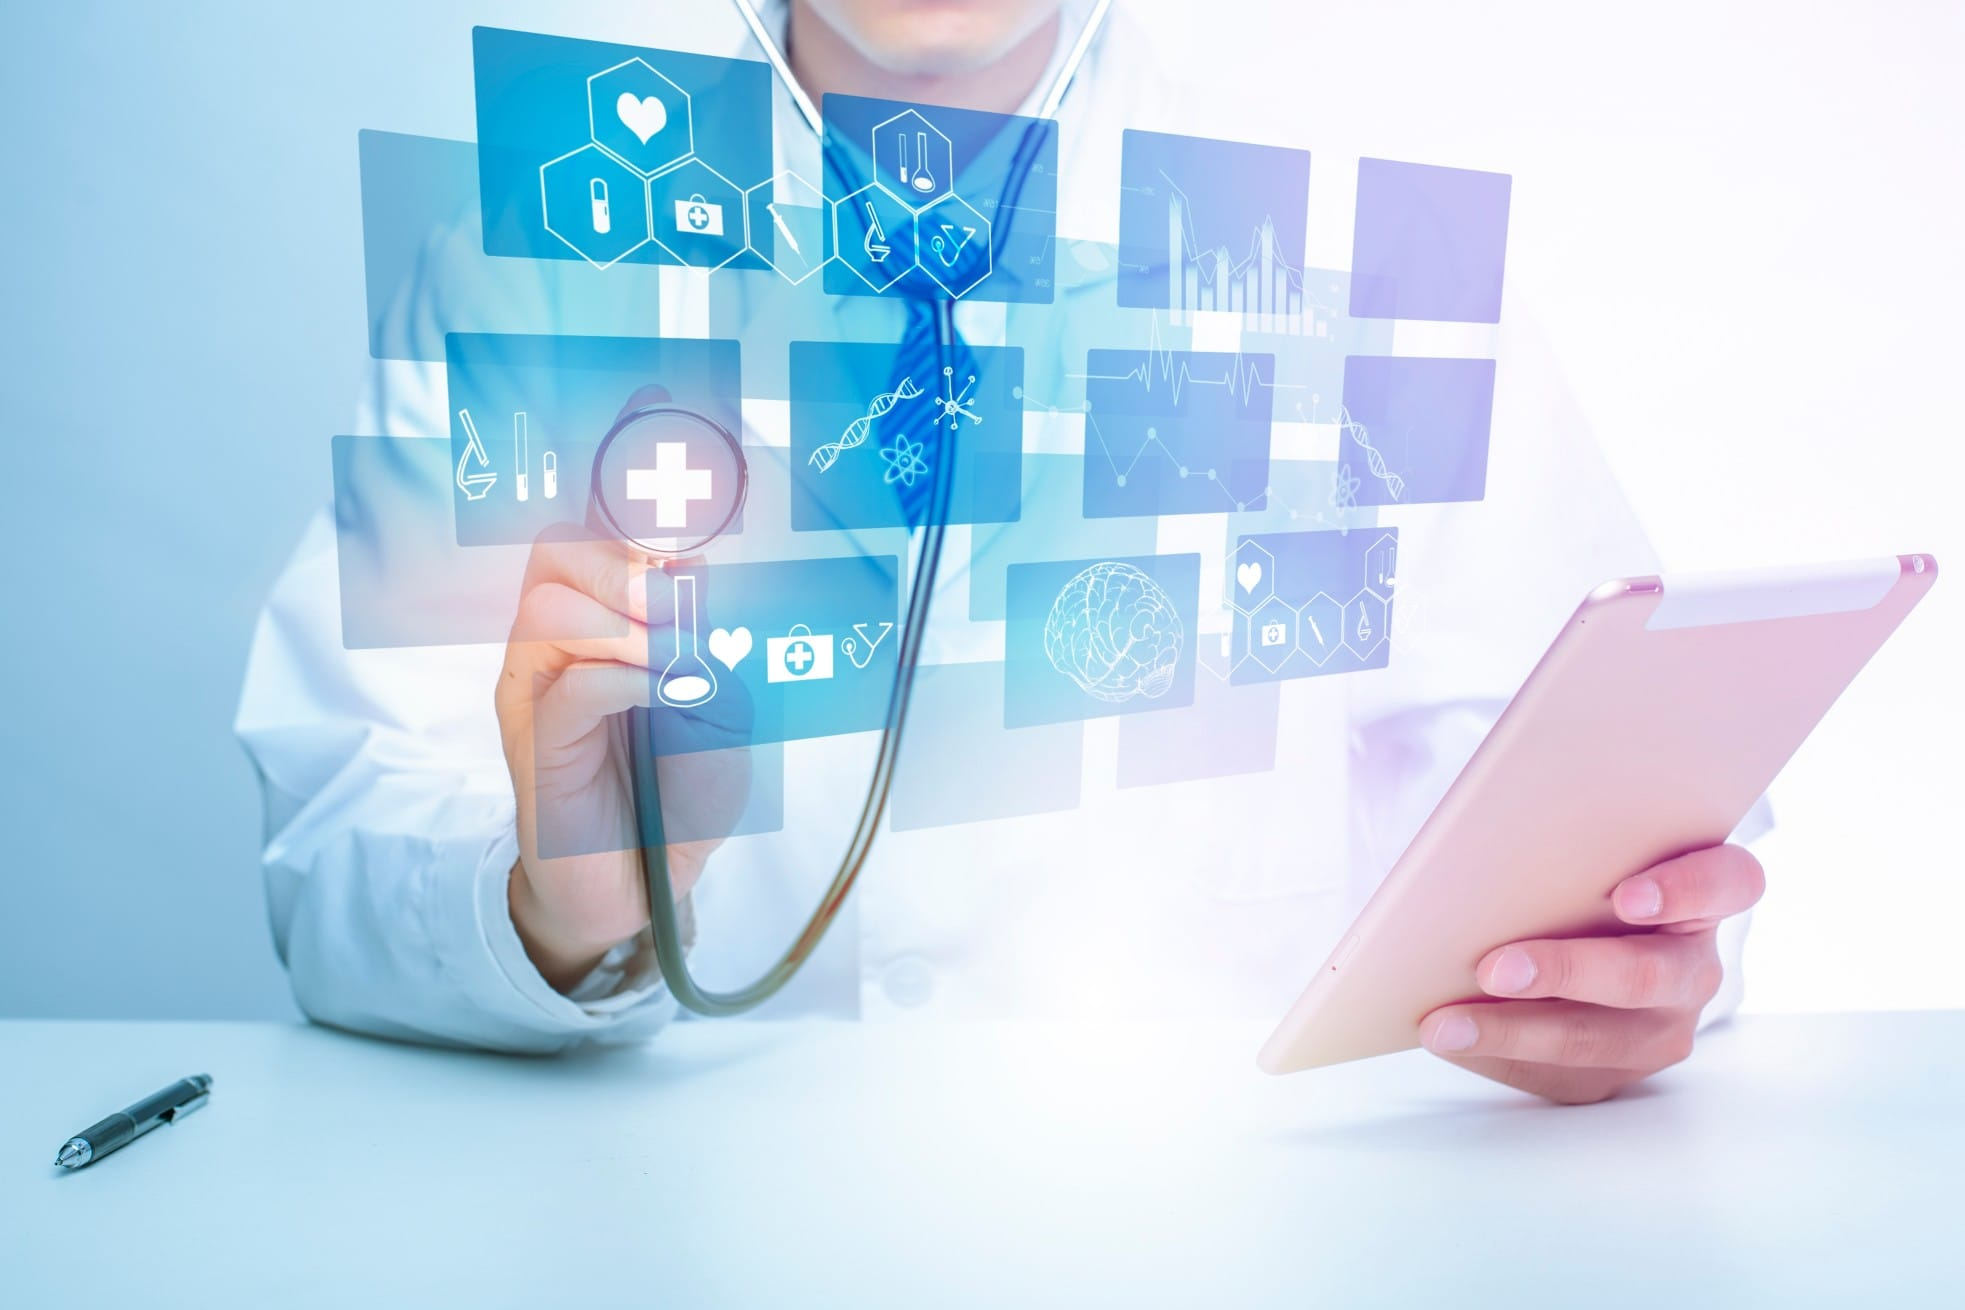 doctor and technology in healthcare during COVDI19